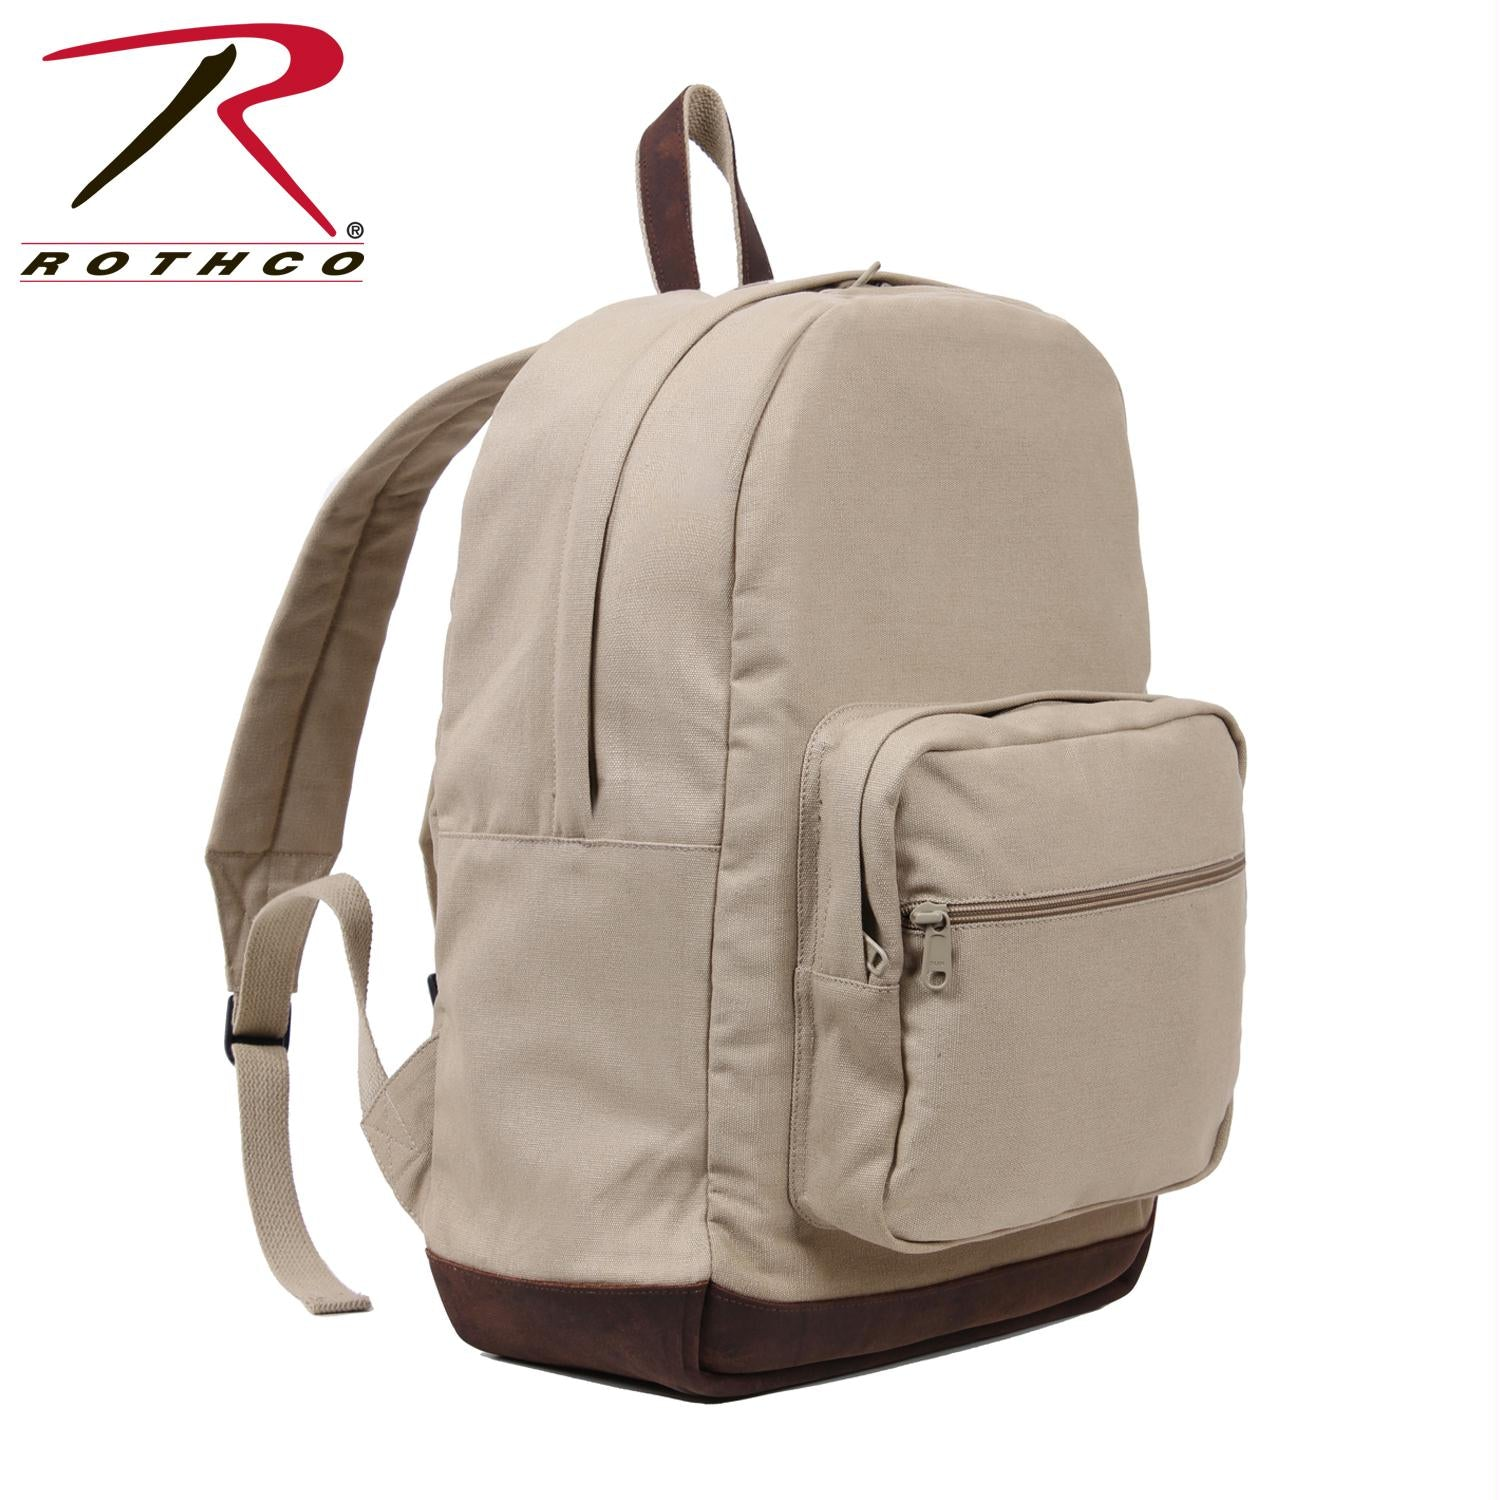 Rothco Vintage Canvas Teardrop Backpack With Leather Accents - Khaki